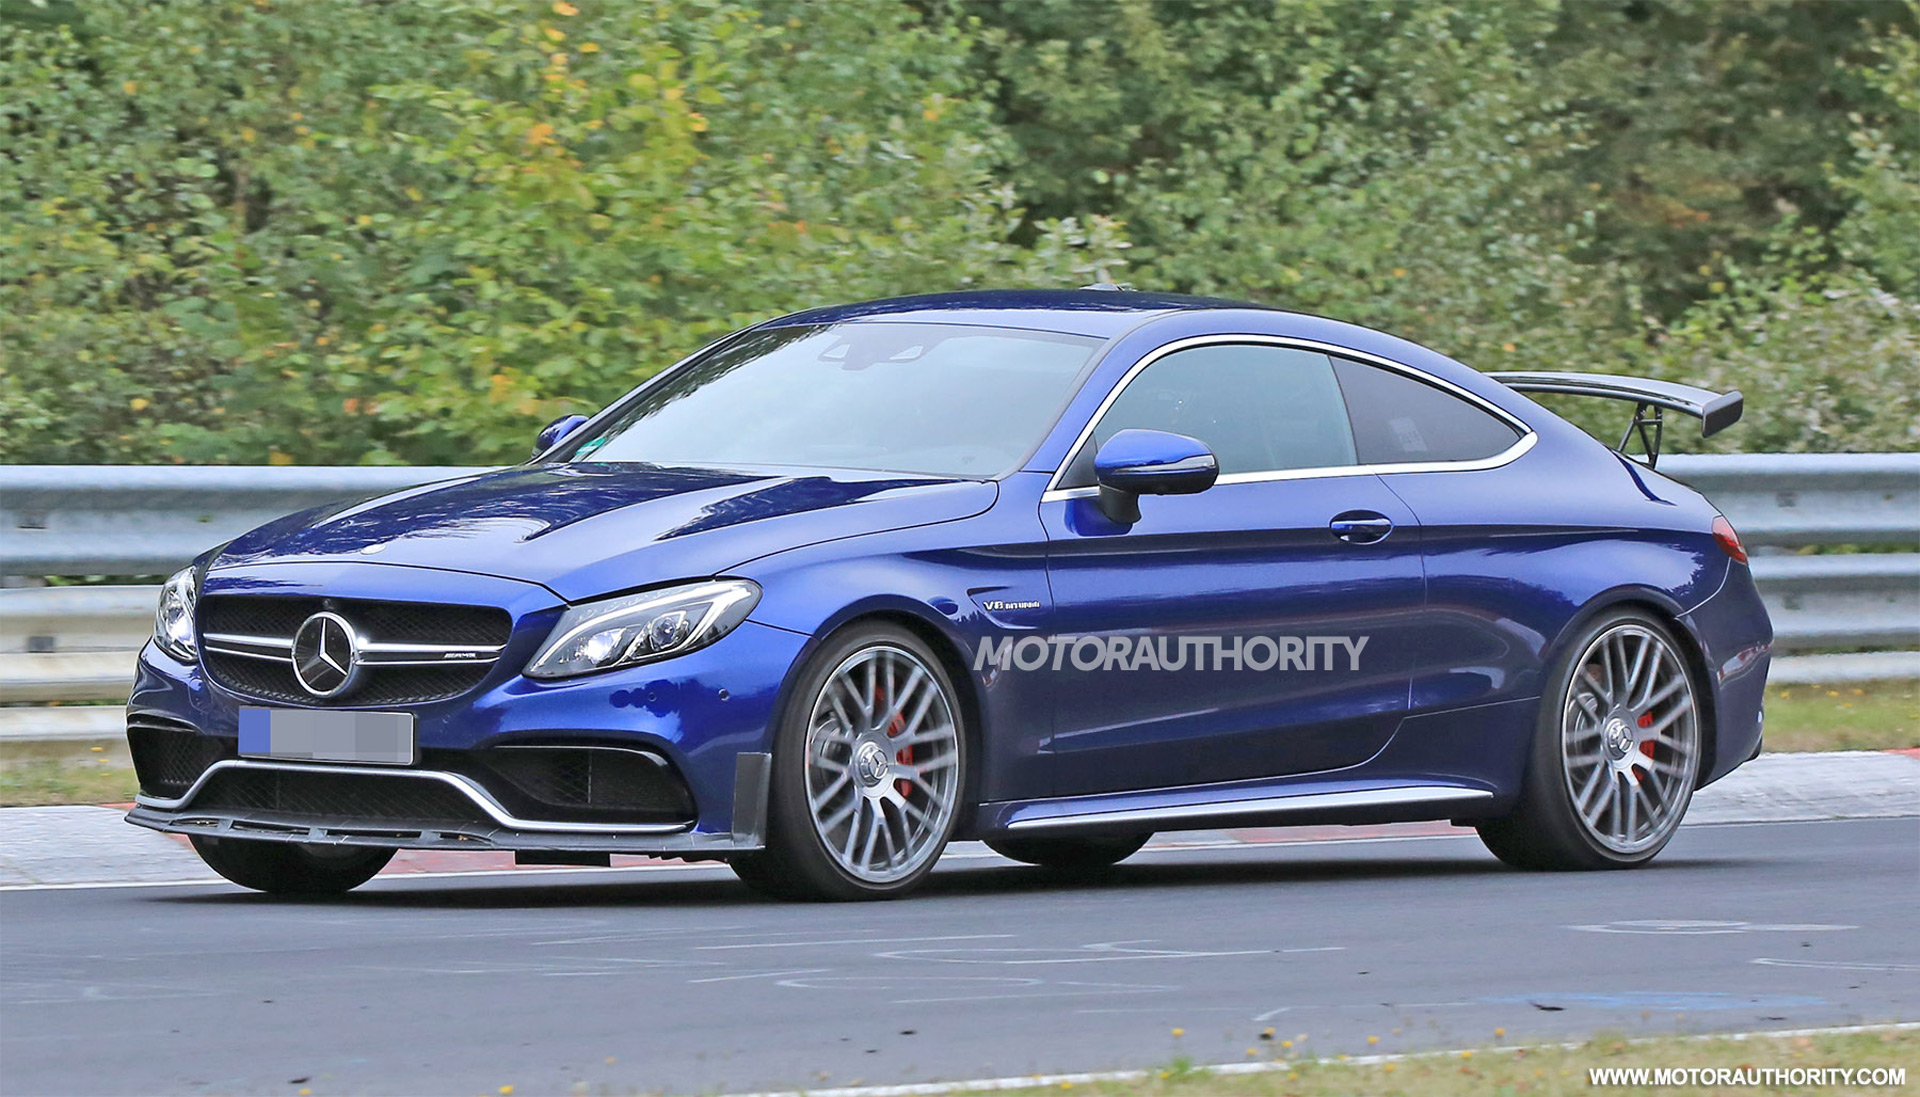 Jaguar E Type For Sale >> 2018 Mercedes-AMG C63 R Coupe spy shots and video